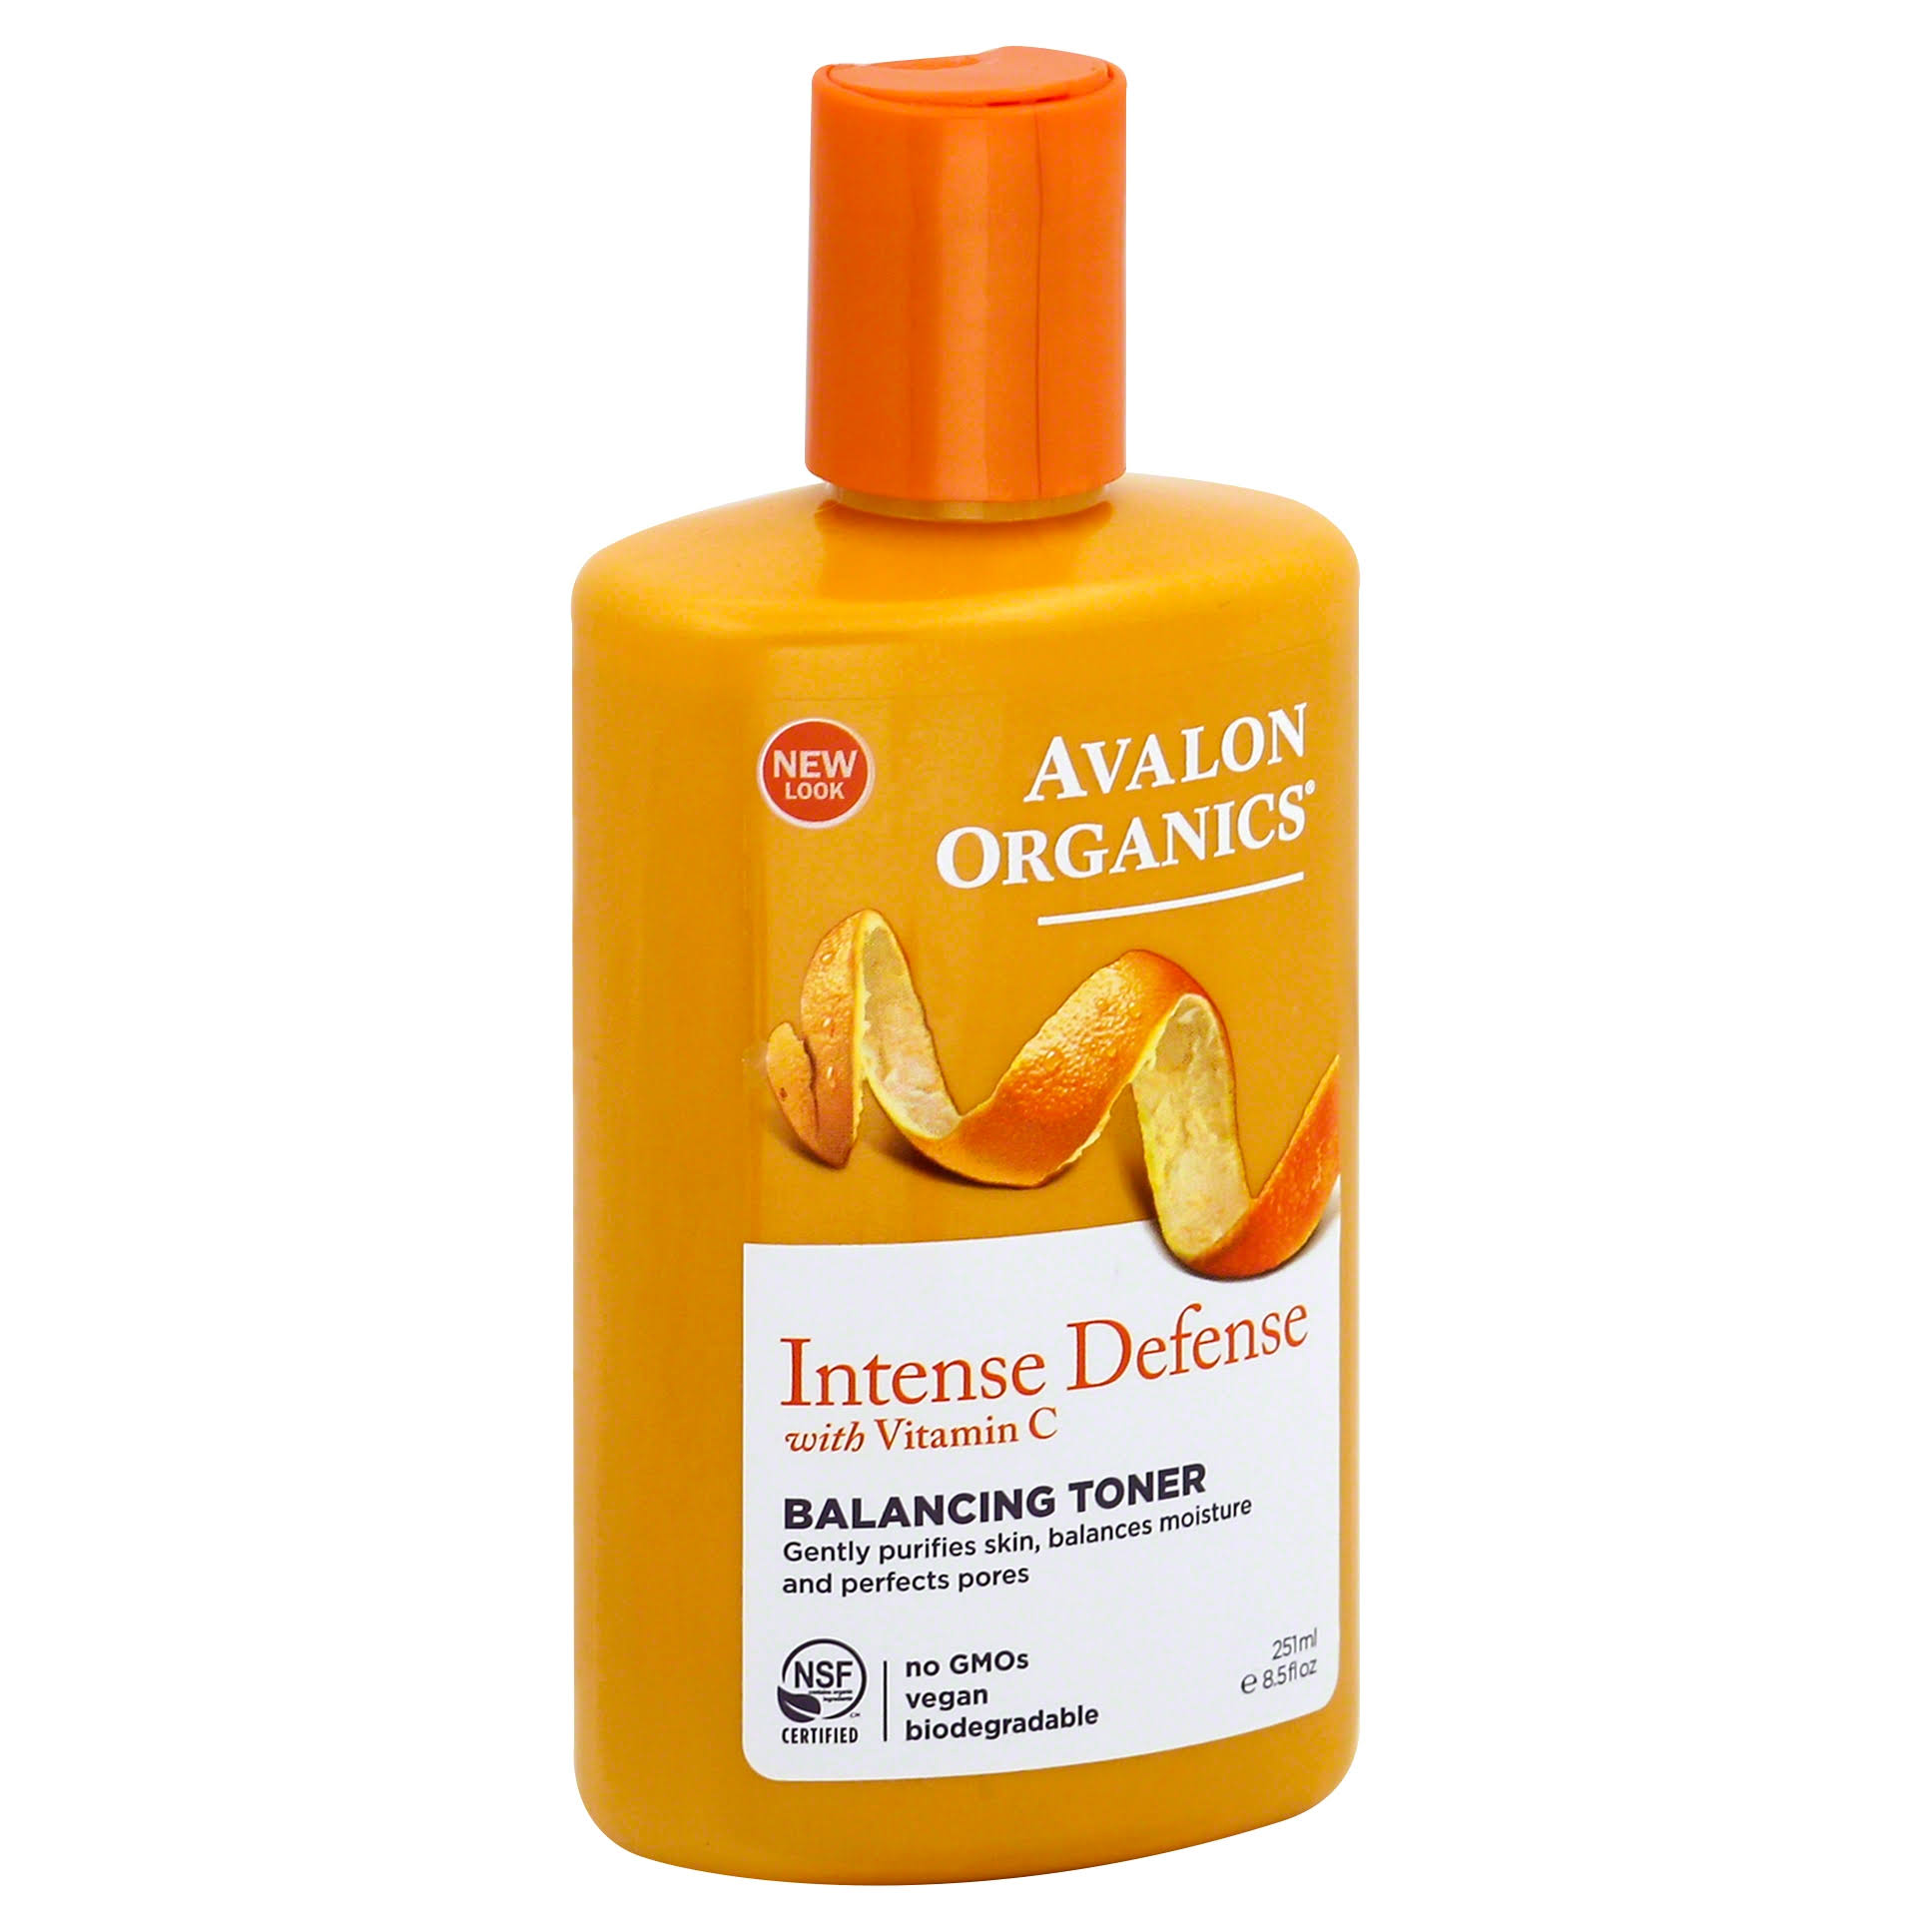 Avalon Organics Intense Defense with Vitamin C Balancing Toner - 8.5oz